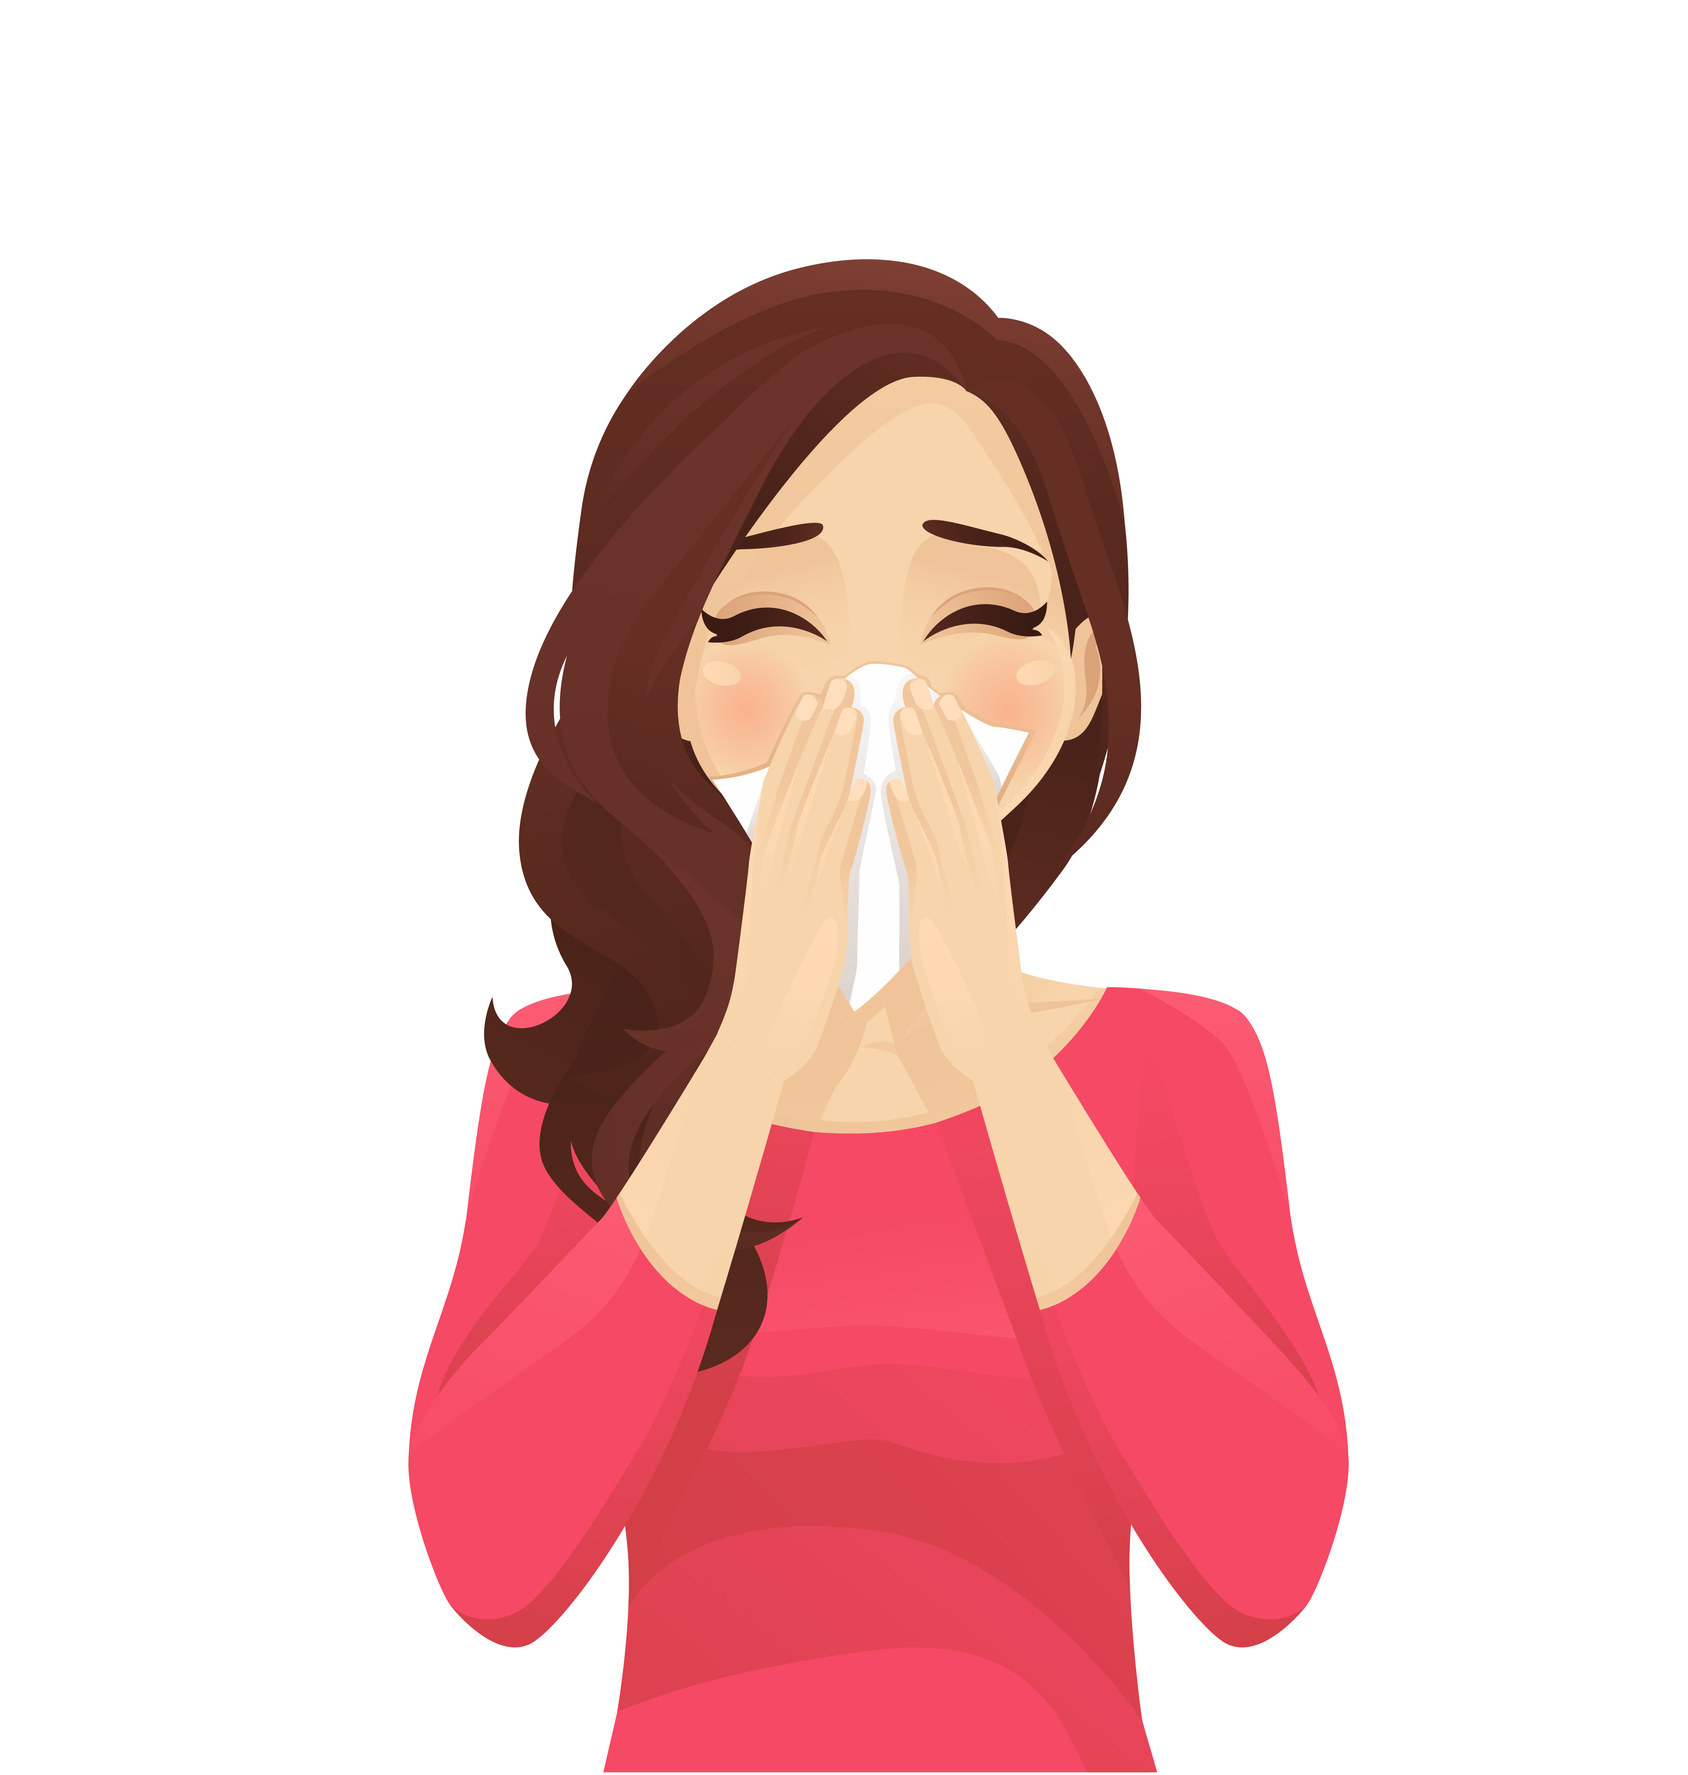 Sick woman blowing nose